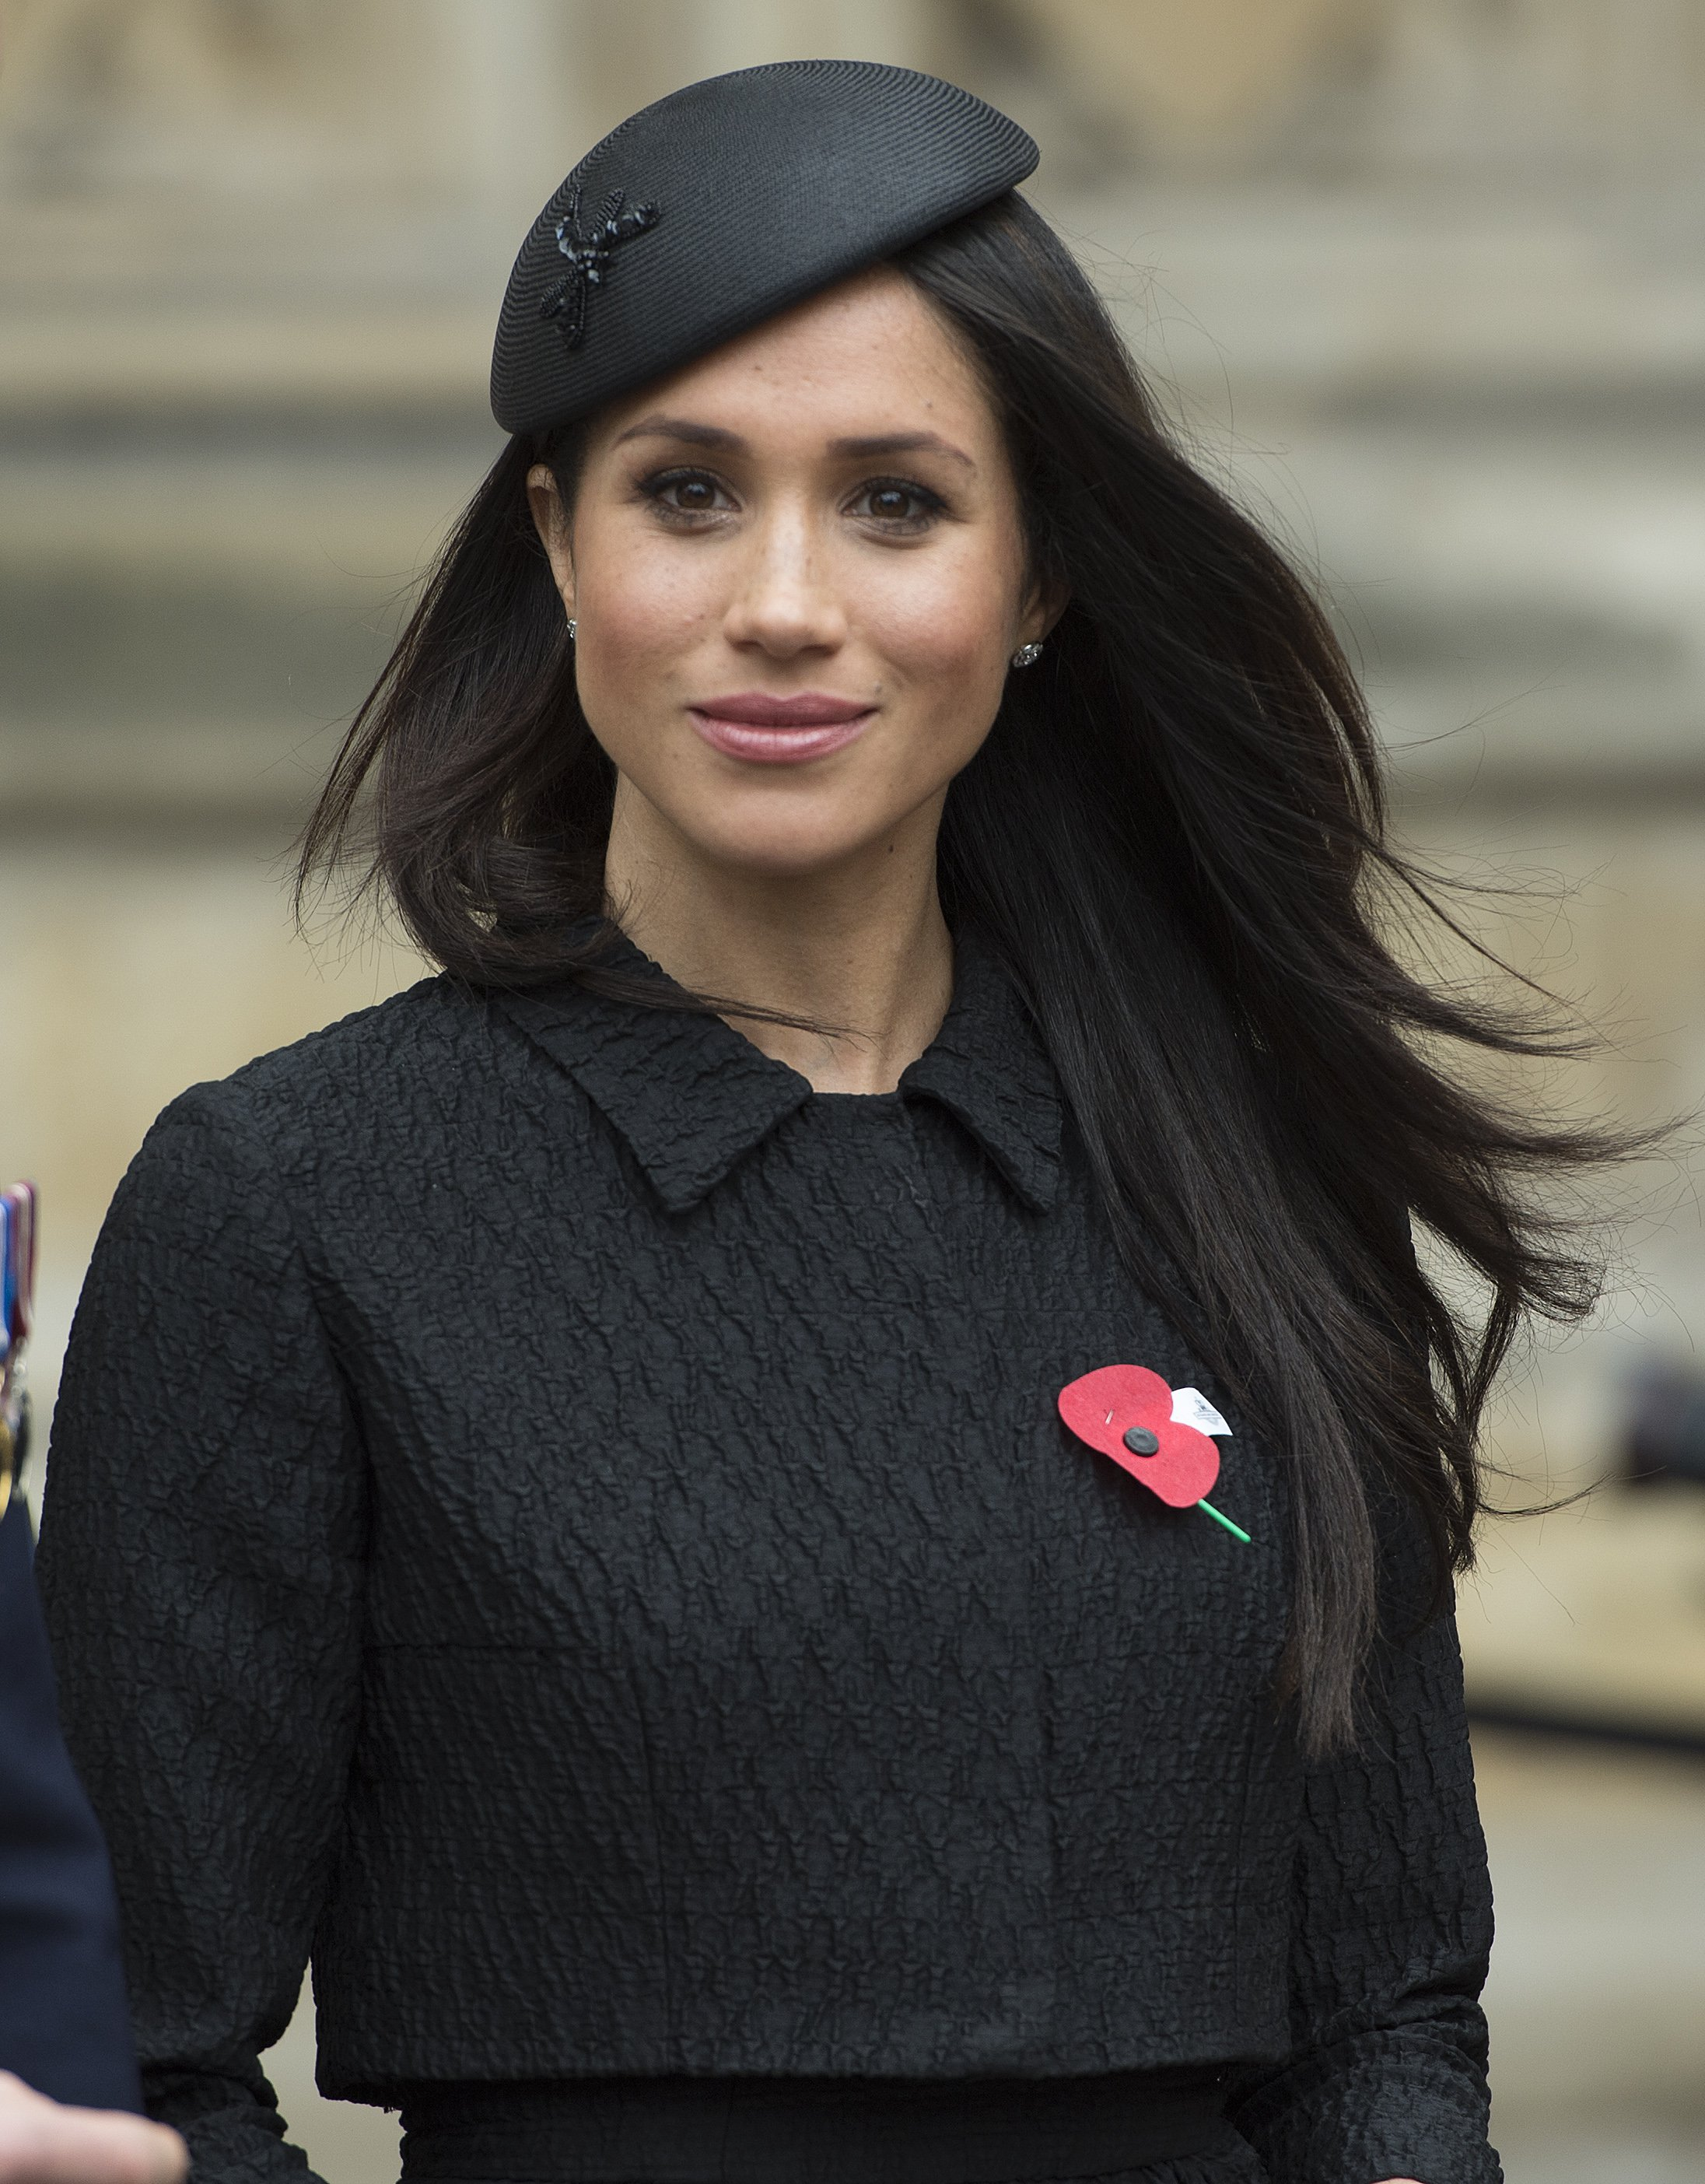 Image Credits: Getty Images / Eddie Mulholland - WPA Pool   Meghan Markle attends an Anzac Day service at Westminster Abbey on April 25, 2018 in London, England.